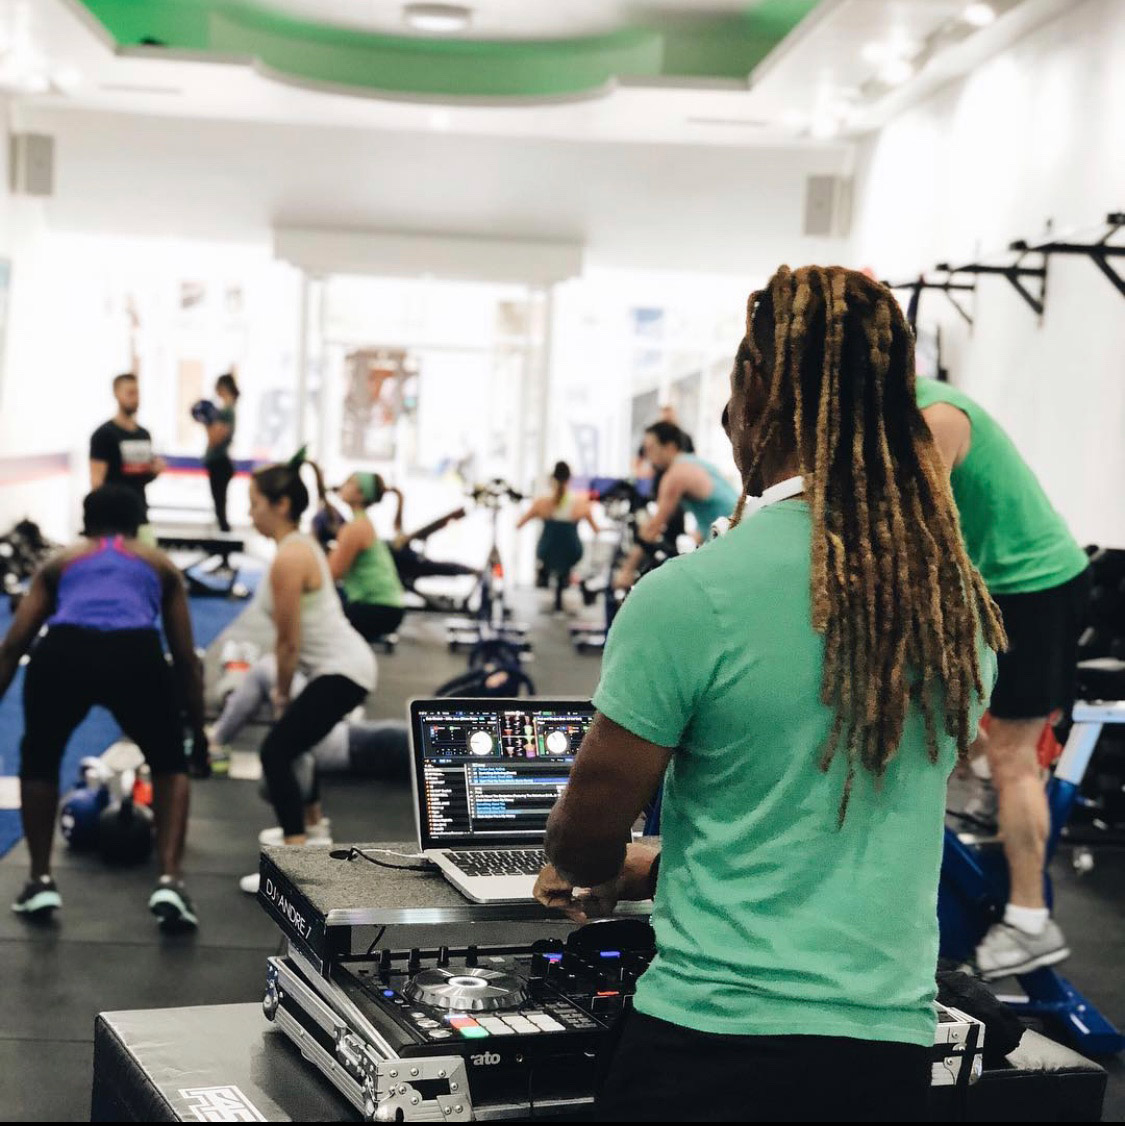 A DJ performs inside a gym as people exercise with kettlebells